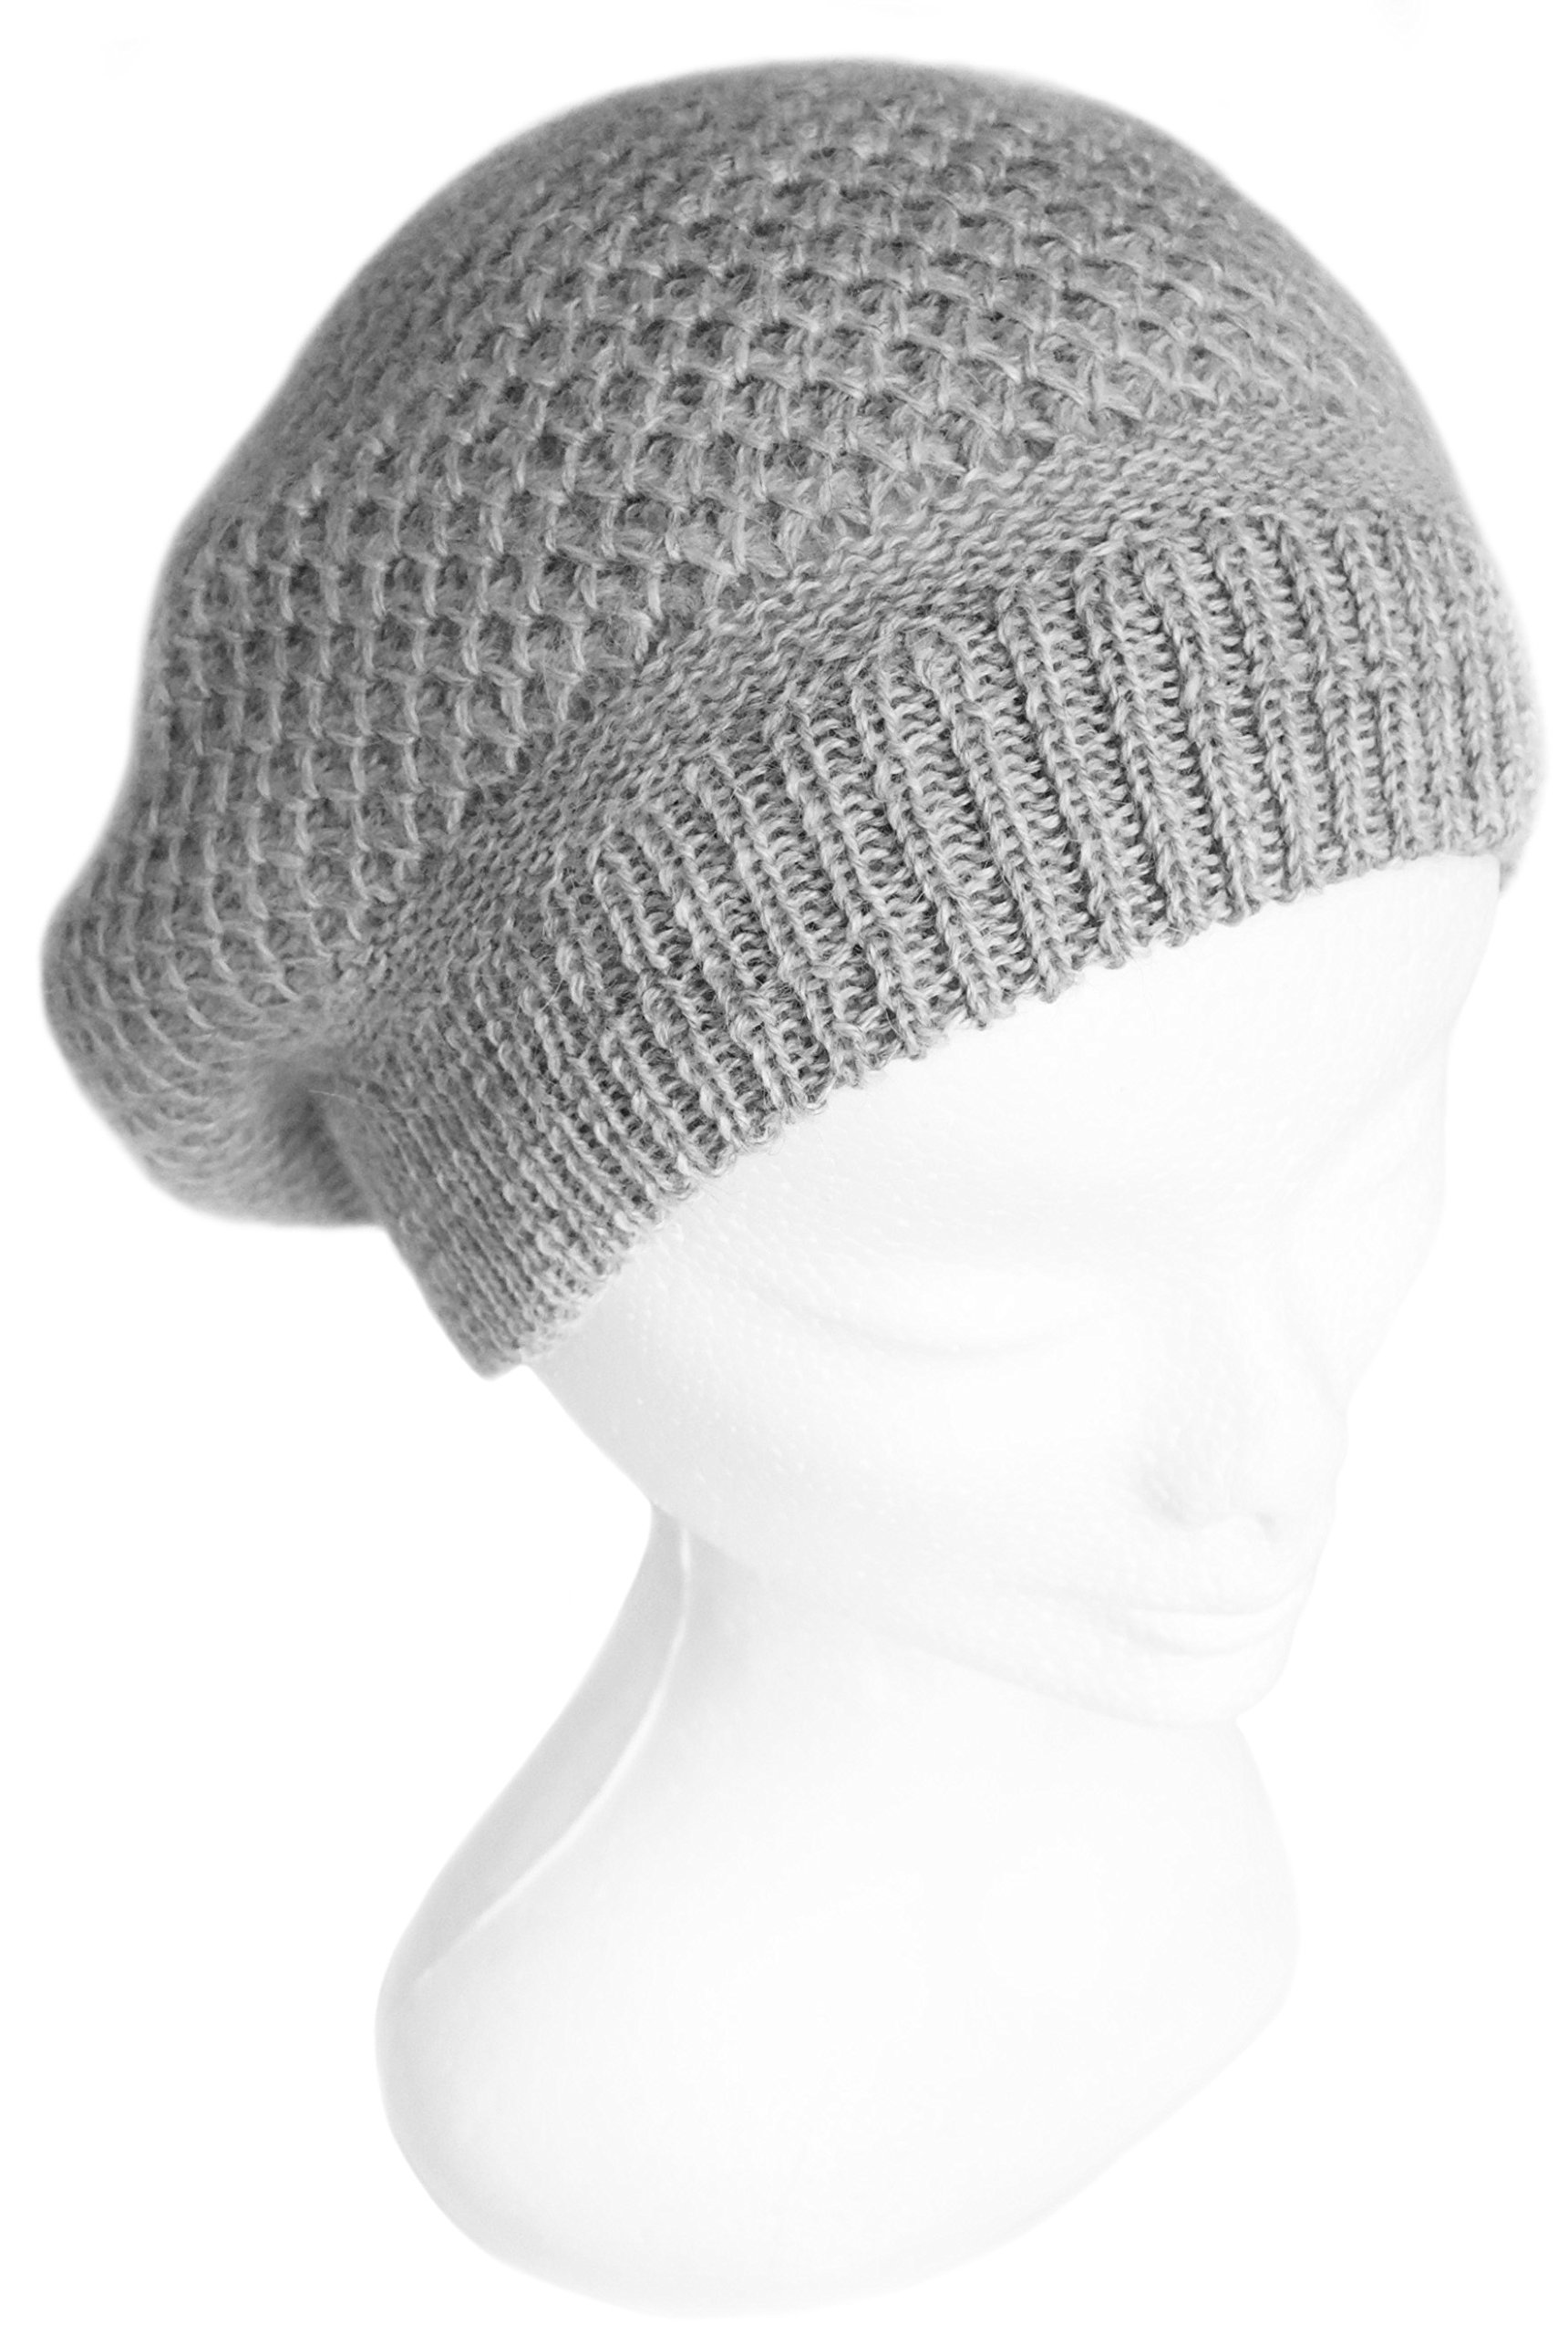 Handmade PURE ALPACA Beret Hat - Soothing Gray (READY TO SHIP) by BARBERY Alpaca Accessories